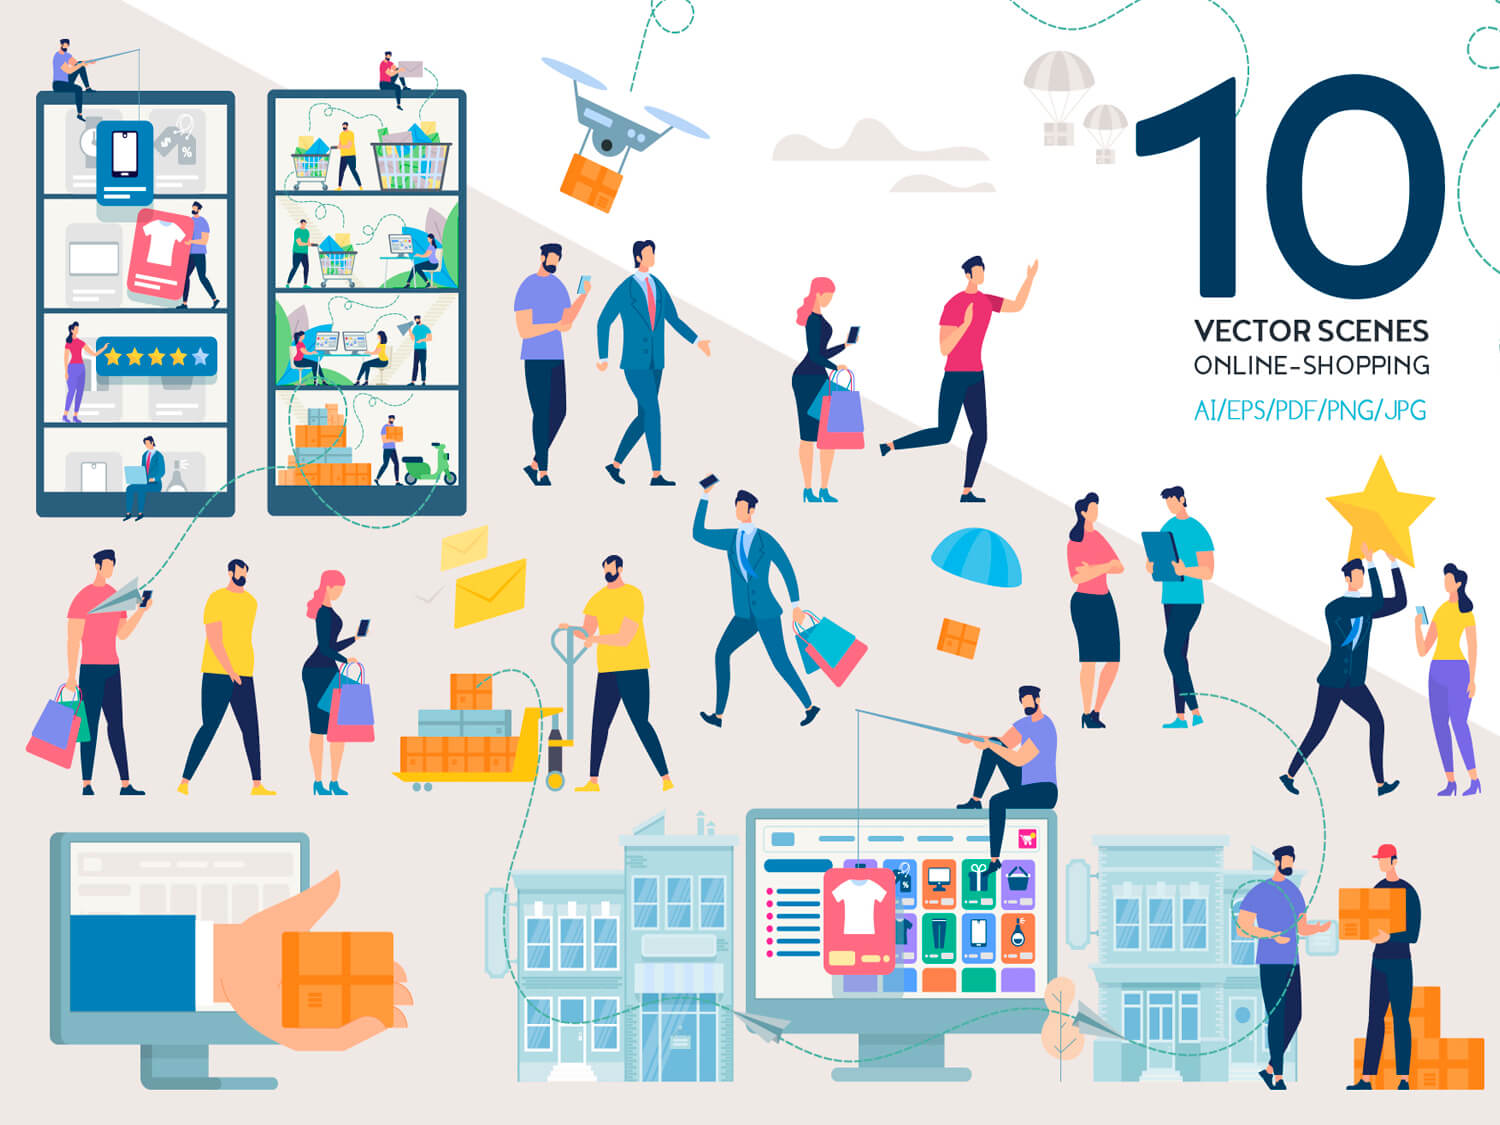 24-in-1 Flaticons Bundle: 10 Online Shopping Vector Scenes